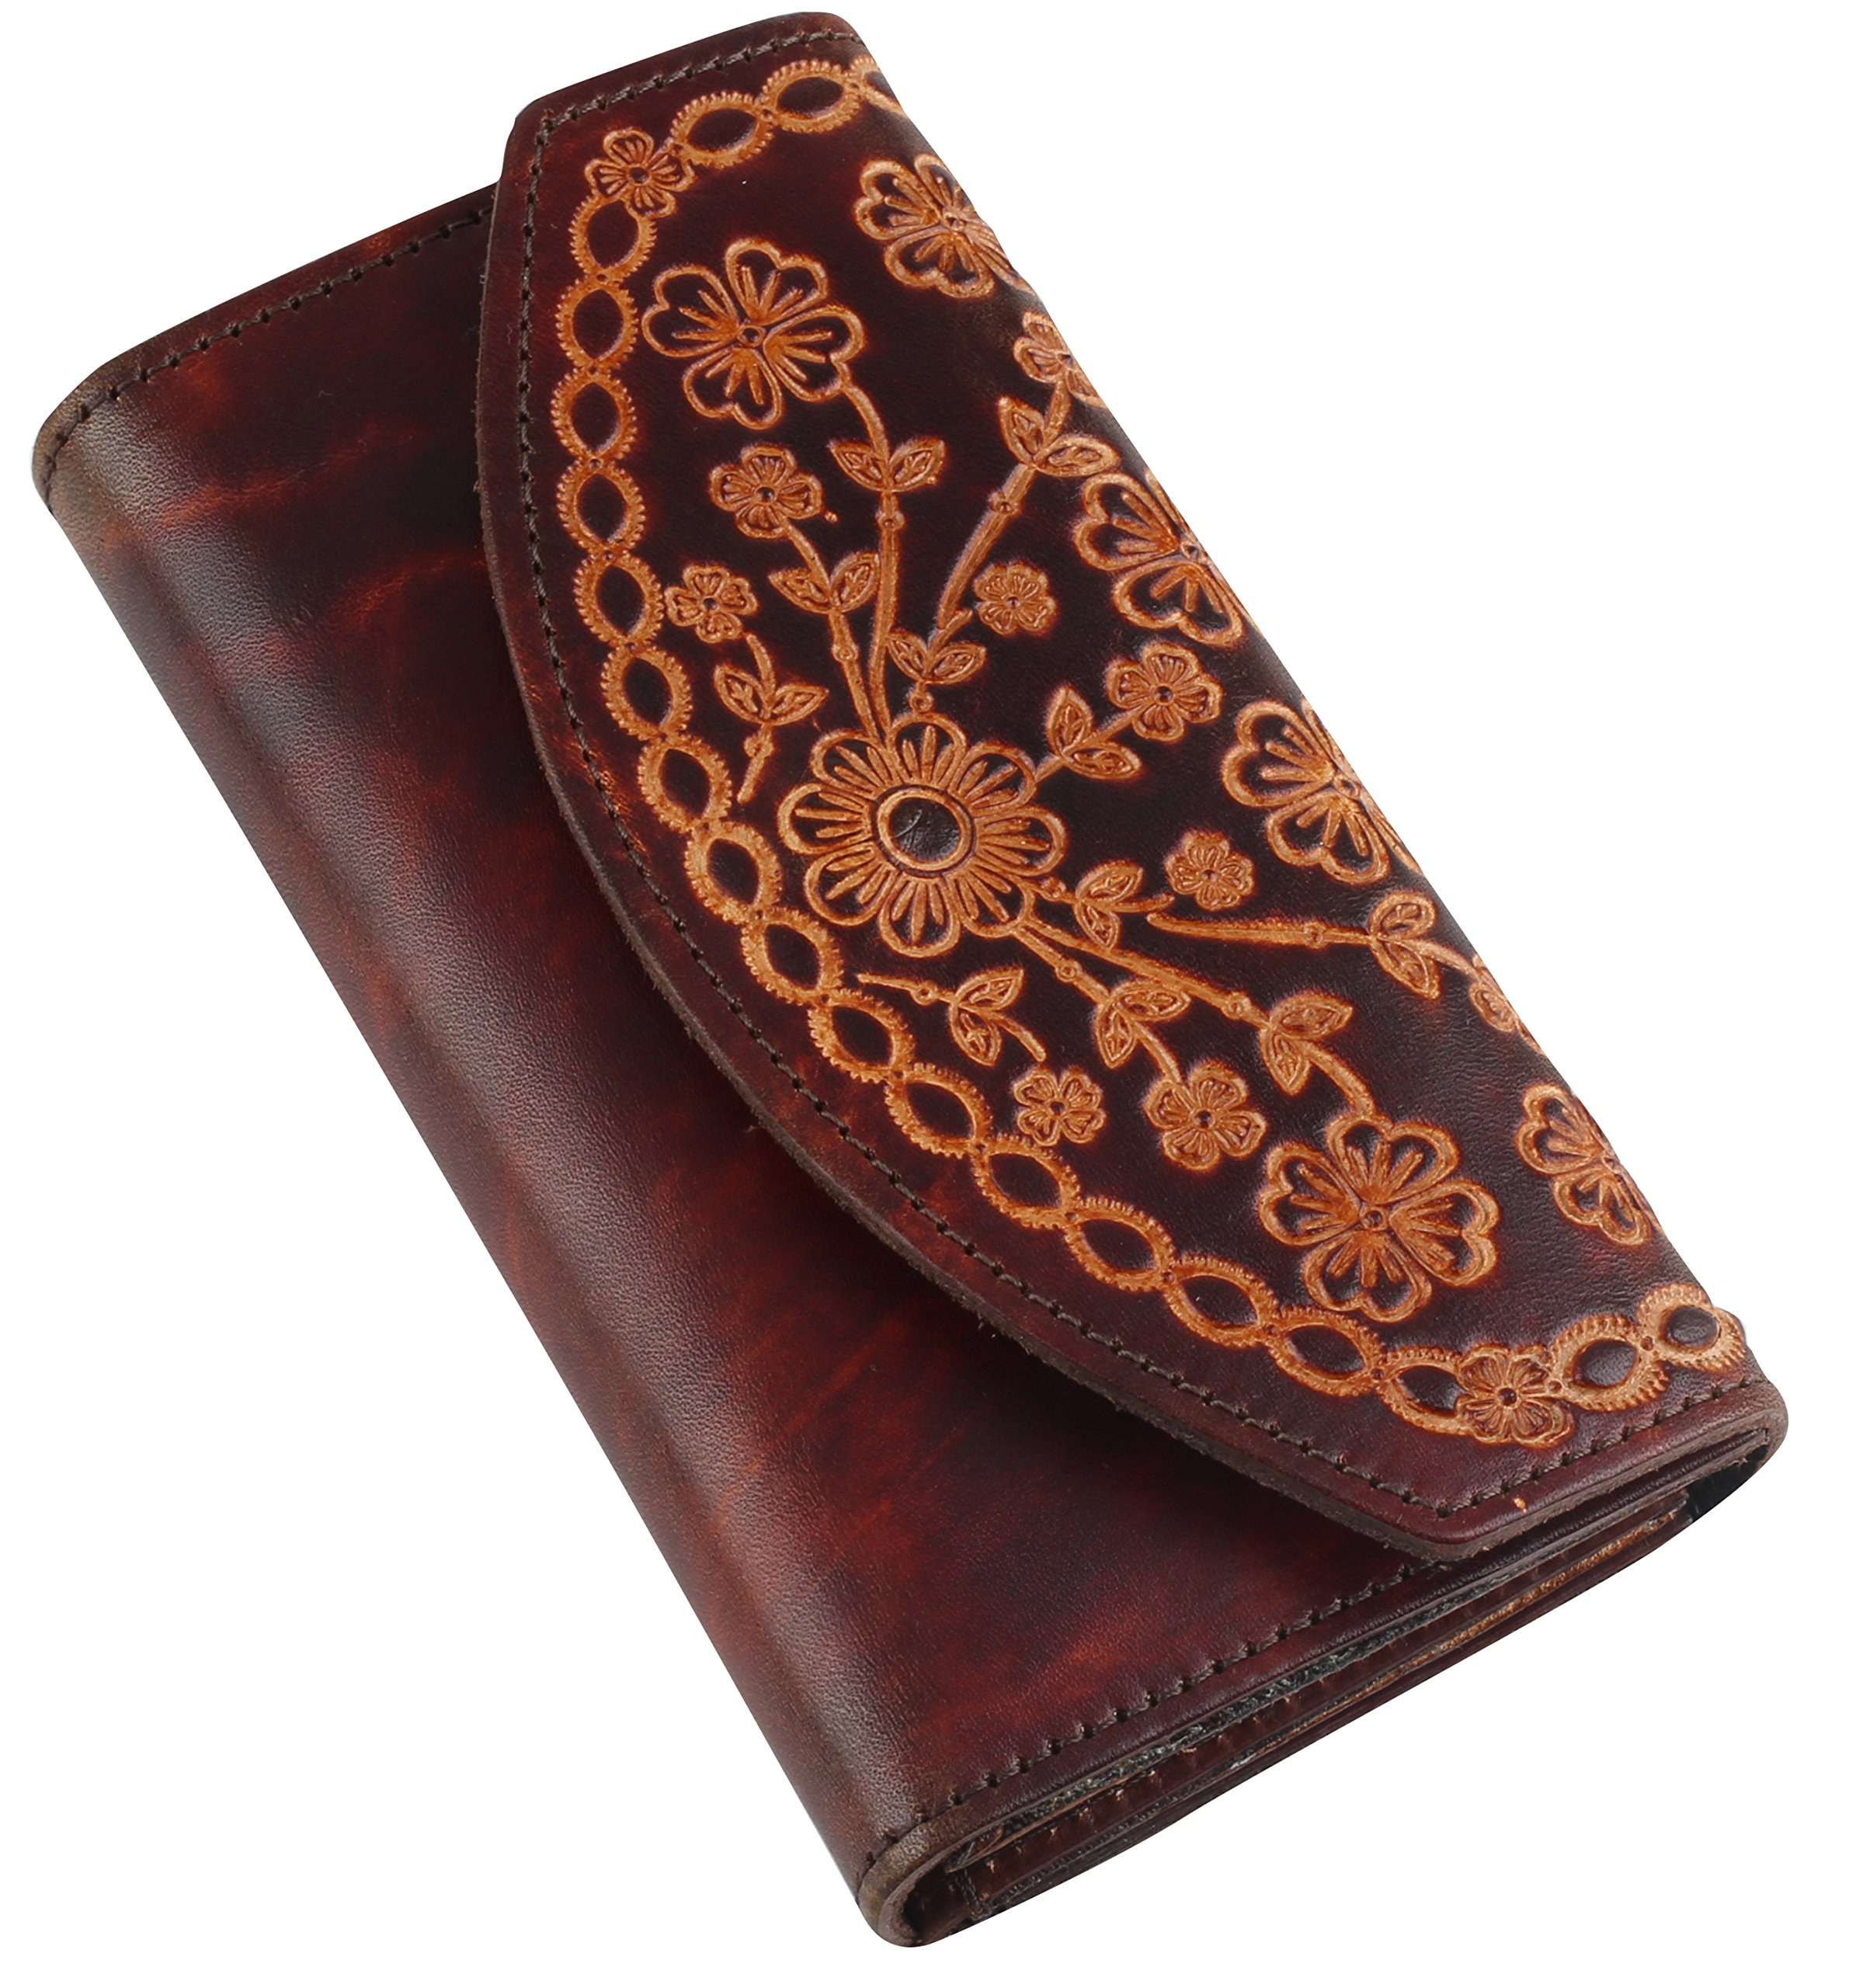 RFID Blocking Women's Bifold Vintage Antique Cowhide Top Grain Leather Wallet,19 Card Slots, Made In USA,Snap closure,LC700A-RFID-brown